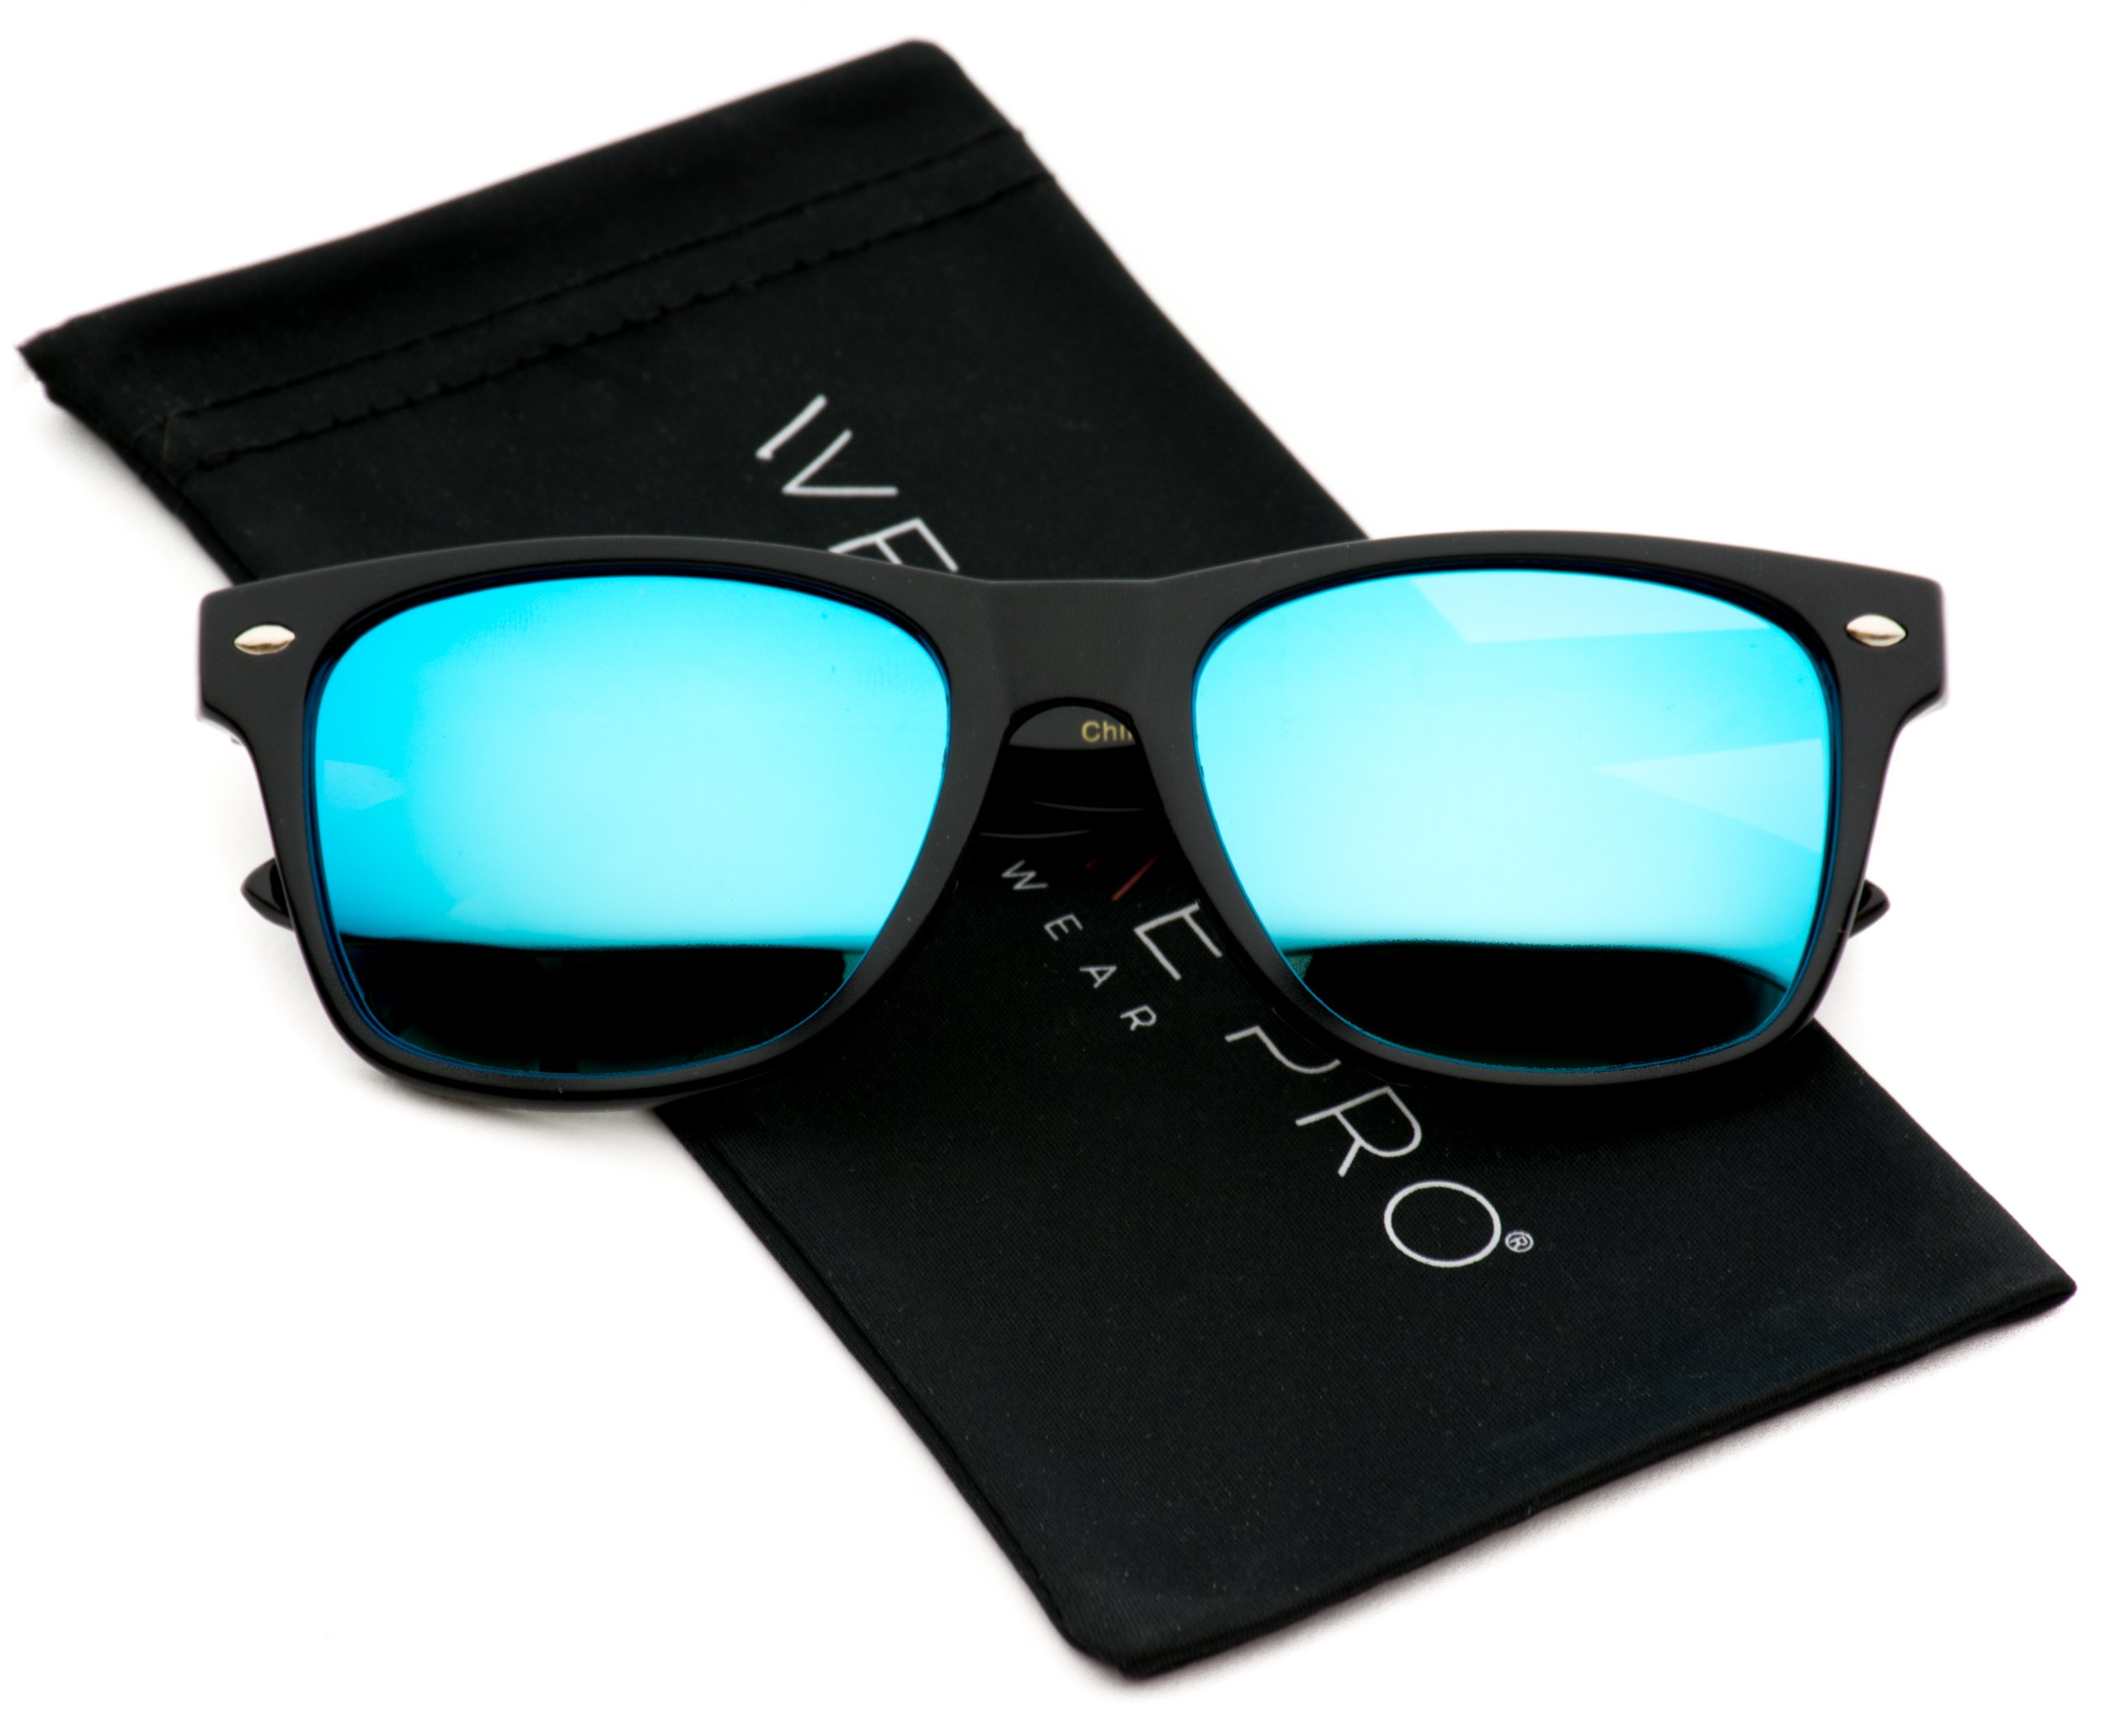 Polarized Flat Mirrored Reflective Color Lens Large Horn Rimmed Style Sunglasses (Mirrored Blue)